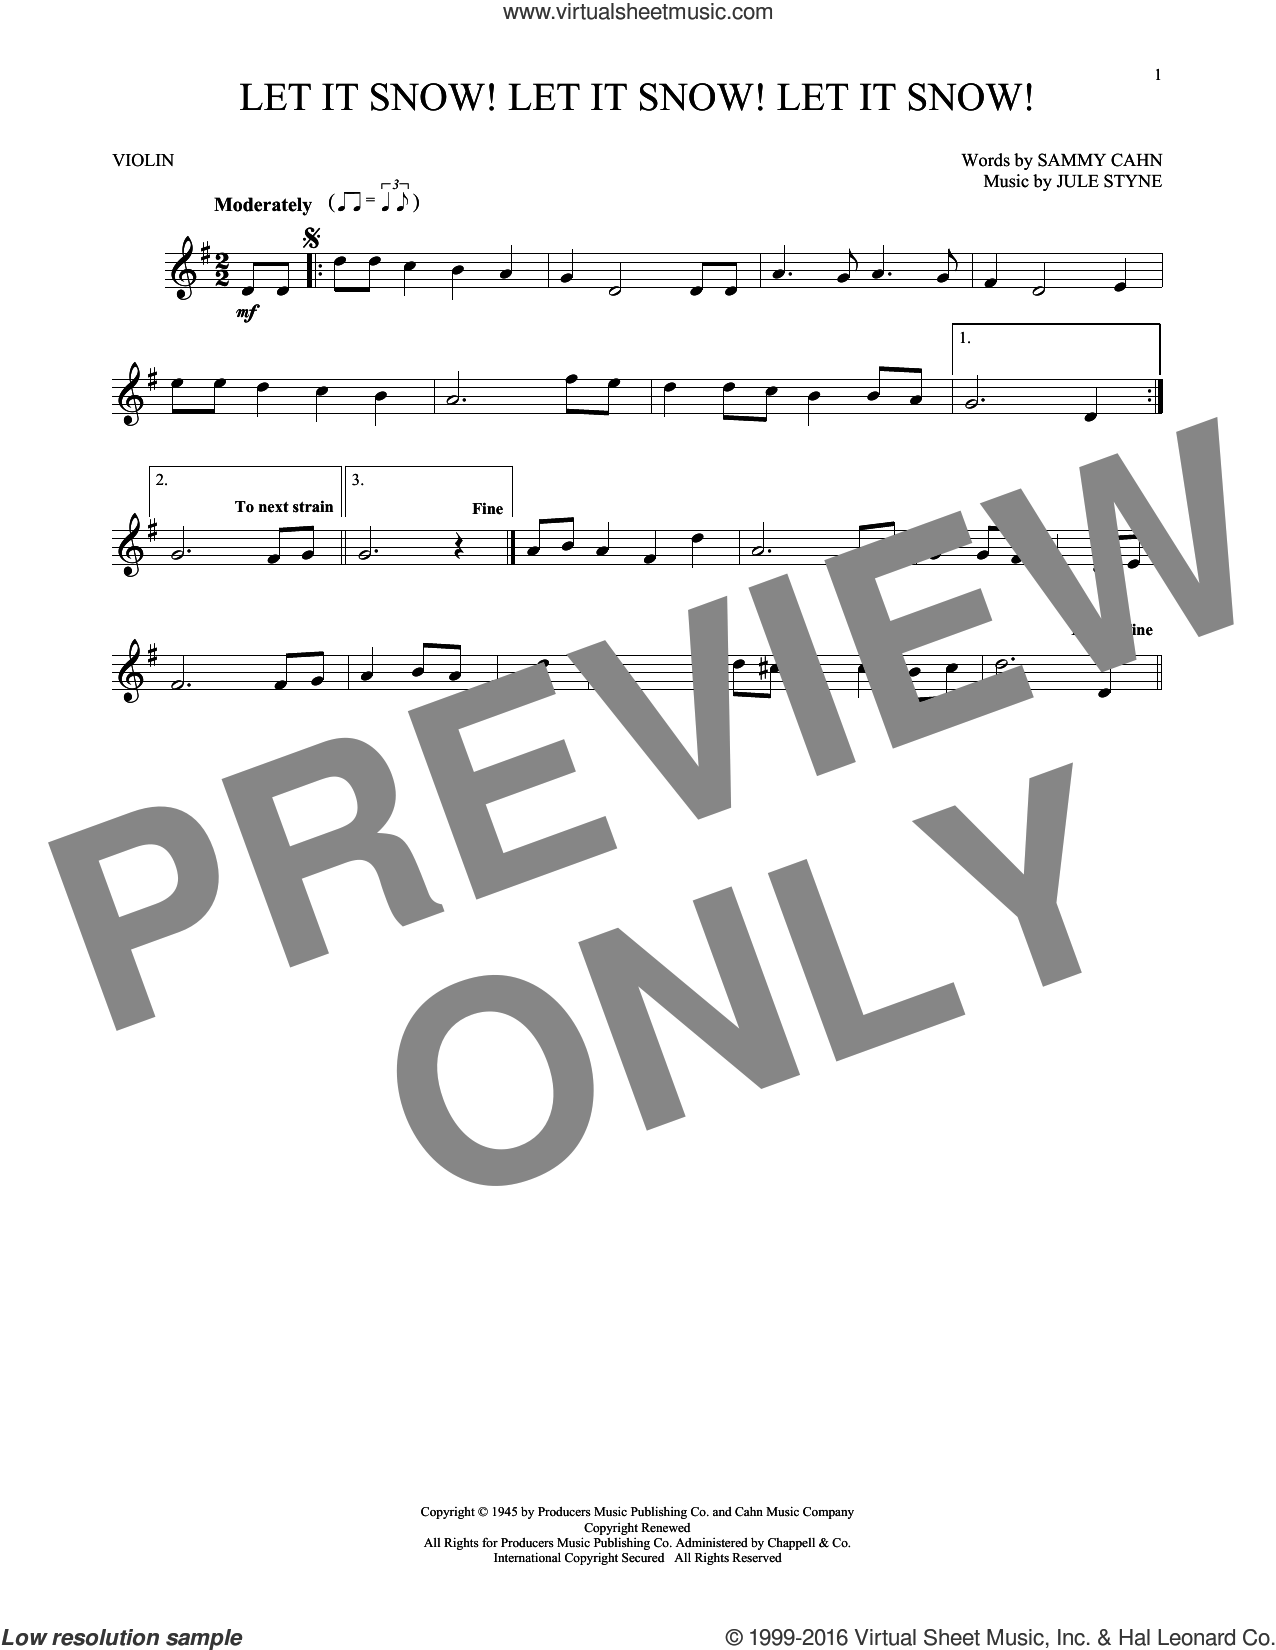 Let It Snow! Let It Snow! Let It Snow! sheet music for violin solo by Sammy Cahn